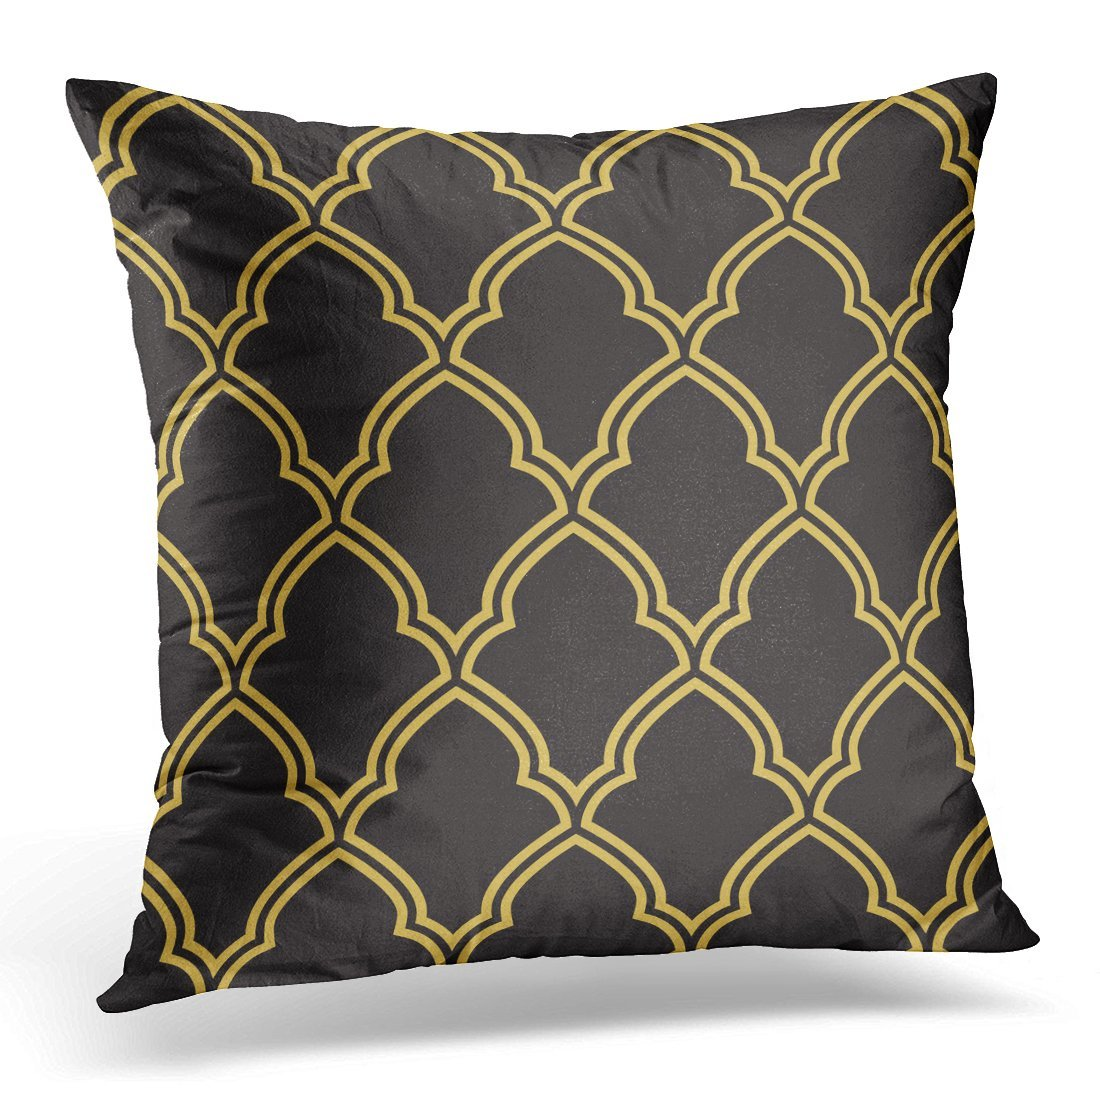 Emvency Throw Pillow Cover Black Damask Geometric Morrocan Trellis Pattern Inspired By Old Ornaments Moroccan Lattice Decorative Pillow Case Home Decor Square 18x18 Inches Pillowcase